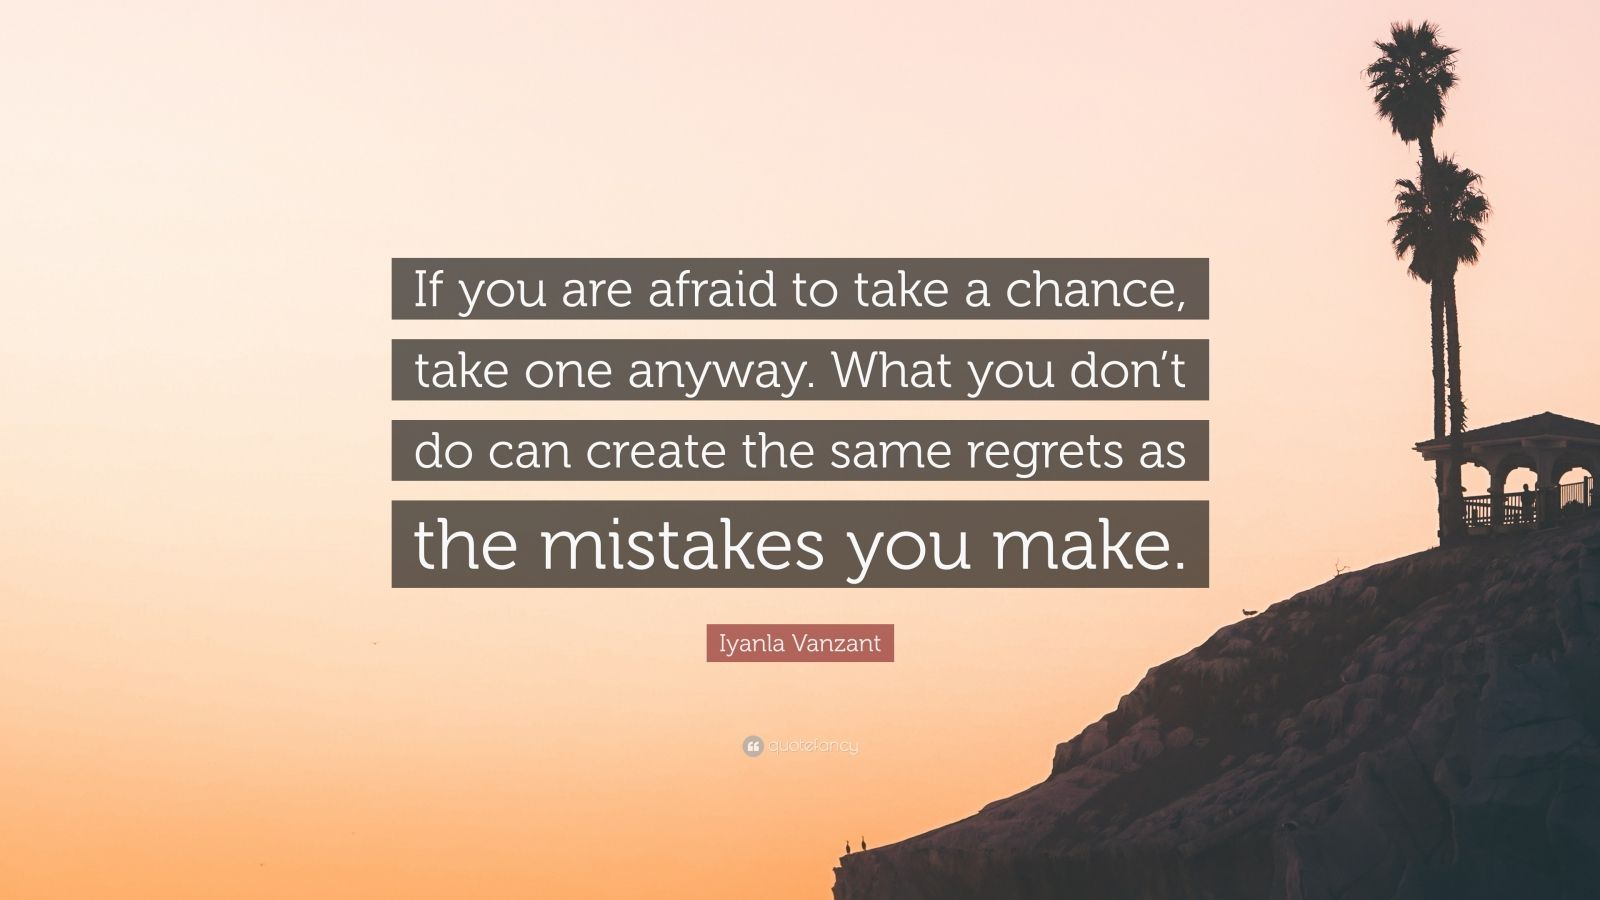 """Iyanla Vanzant Quote: """"If you are afraid to take a chance, take one anyway. What you don't do can create the same regrets as the mistakes you make."""""""